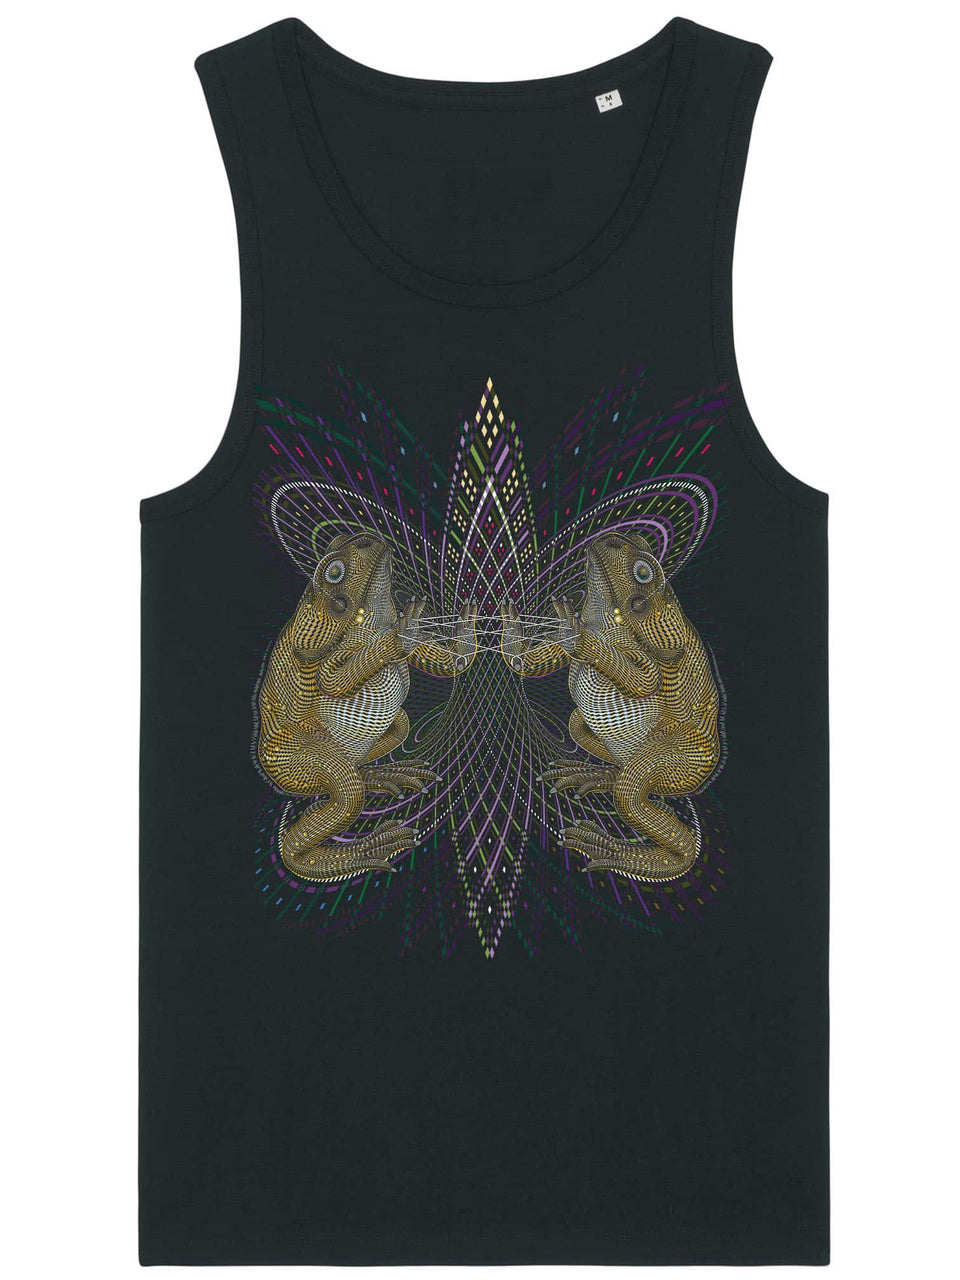 Bufo Alvarius Made To Order Men Tank Top - Black